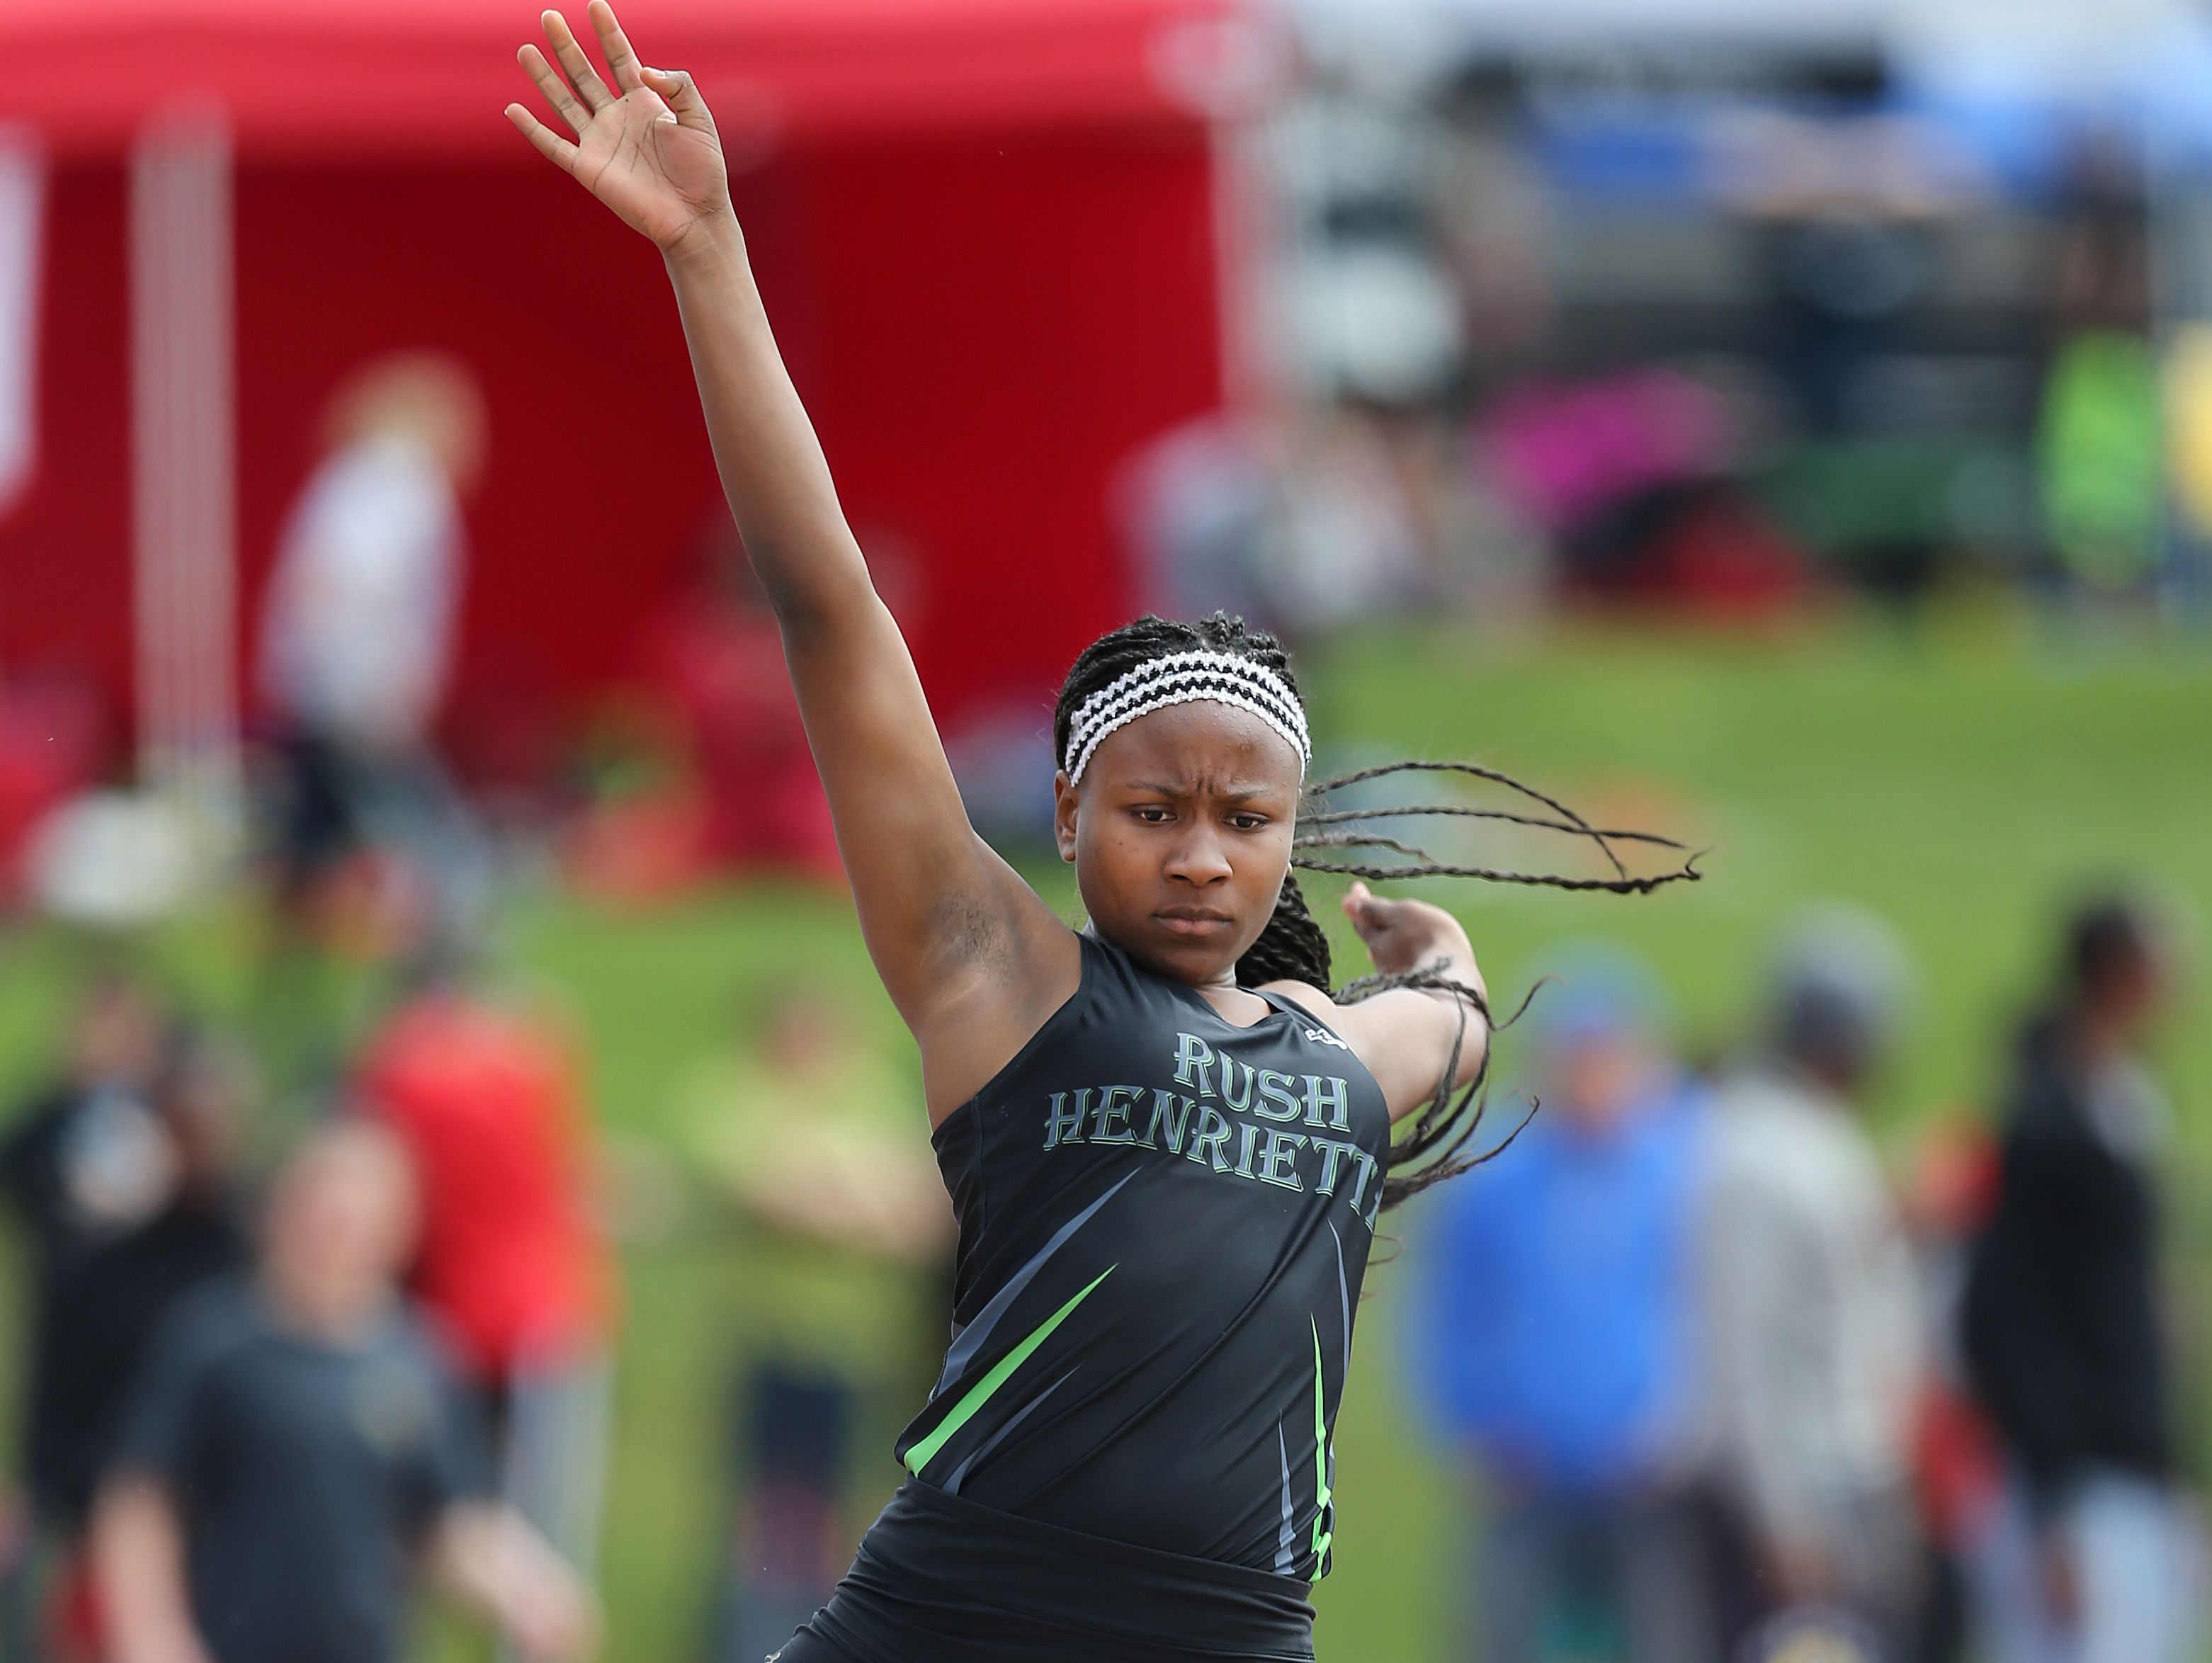 Rush-Henrietta's Lanae-Tava Thomas won the girl's long jump with a jump of 19-06.25 feet at the His and Hers track meet at Penfield High School.